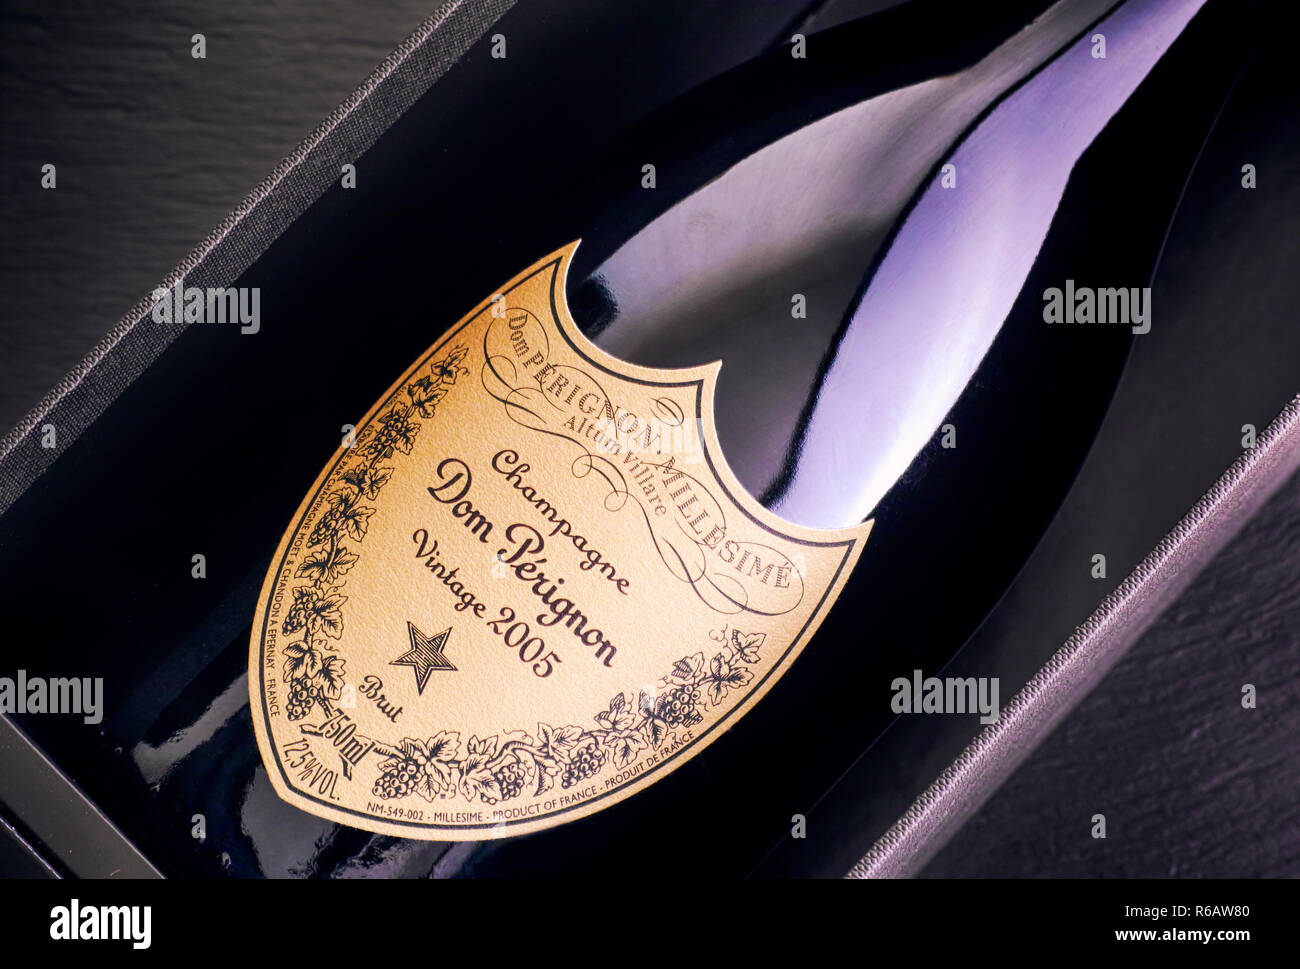 Tambov, Russian Federation - August 14, 2018 Close-up of Bottle of Champagne Dom Perignon Vintage 2005 in box. Black background. Studio shot. - Stock Image